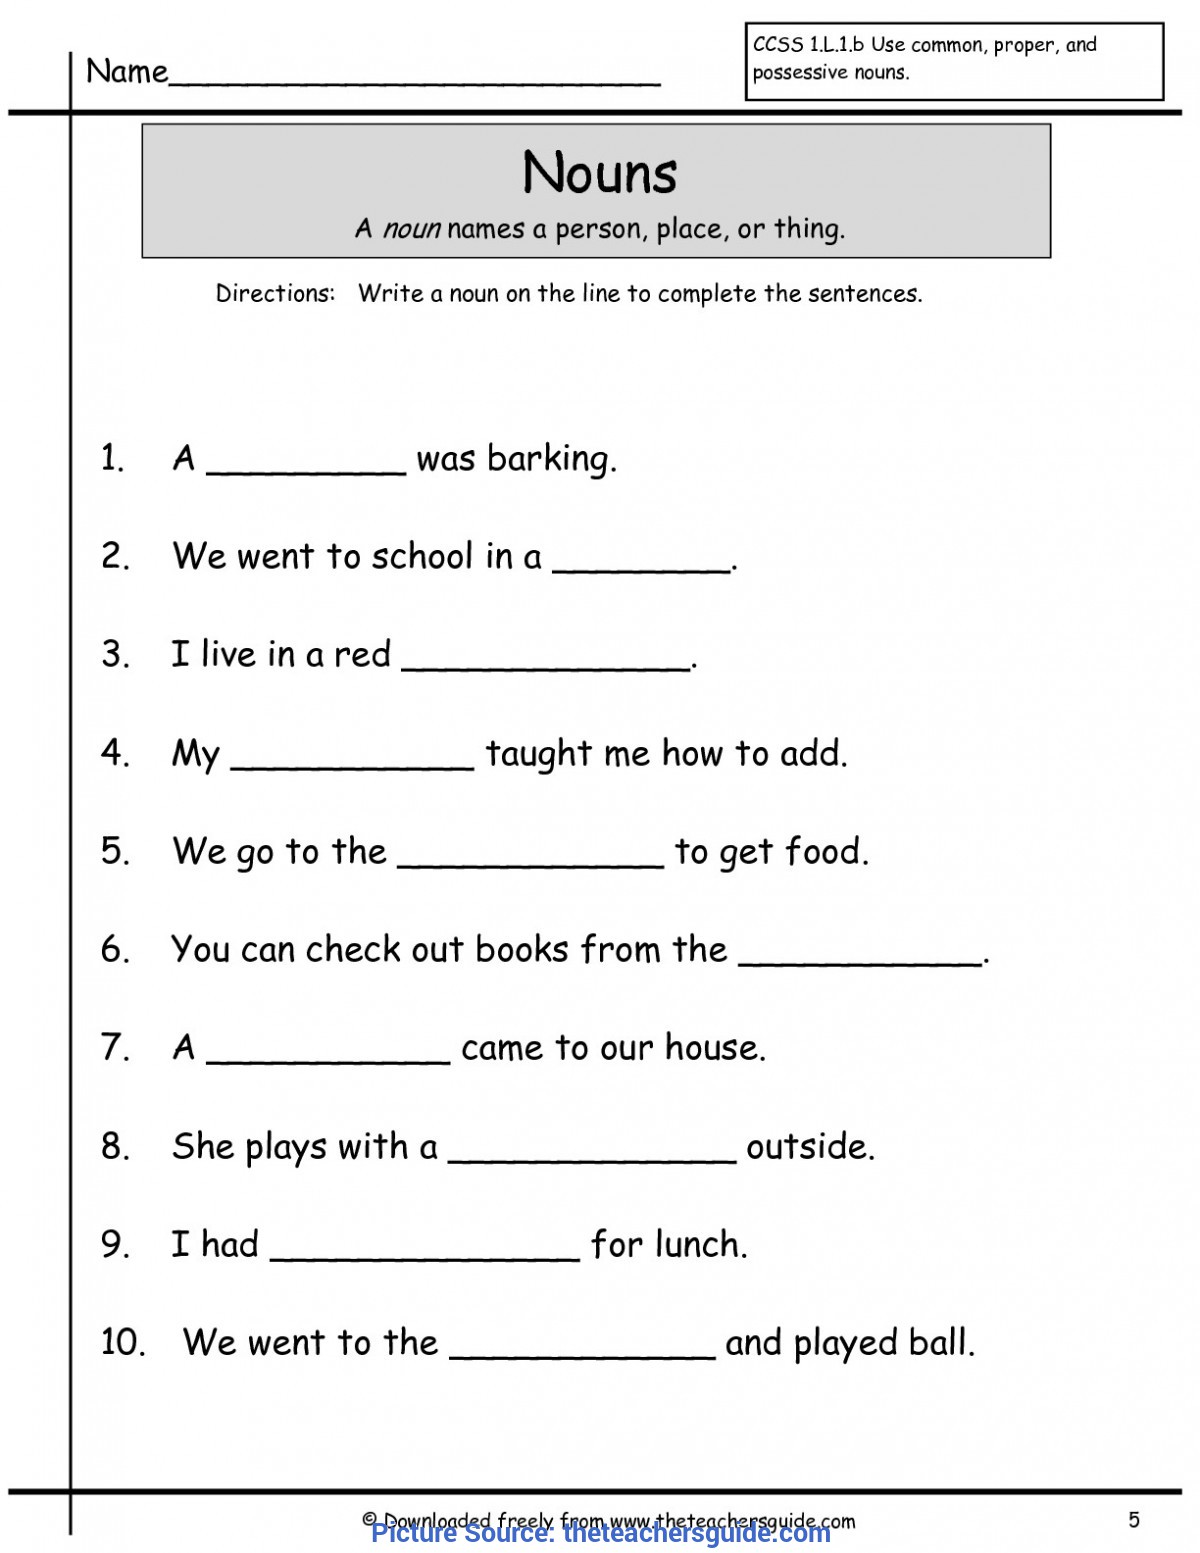 Valuable Lesson Plan Hook Book Look Took Lesson Plans It